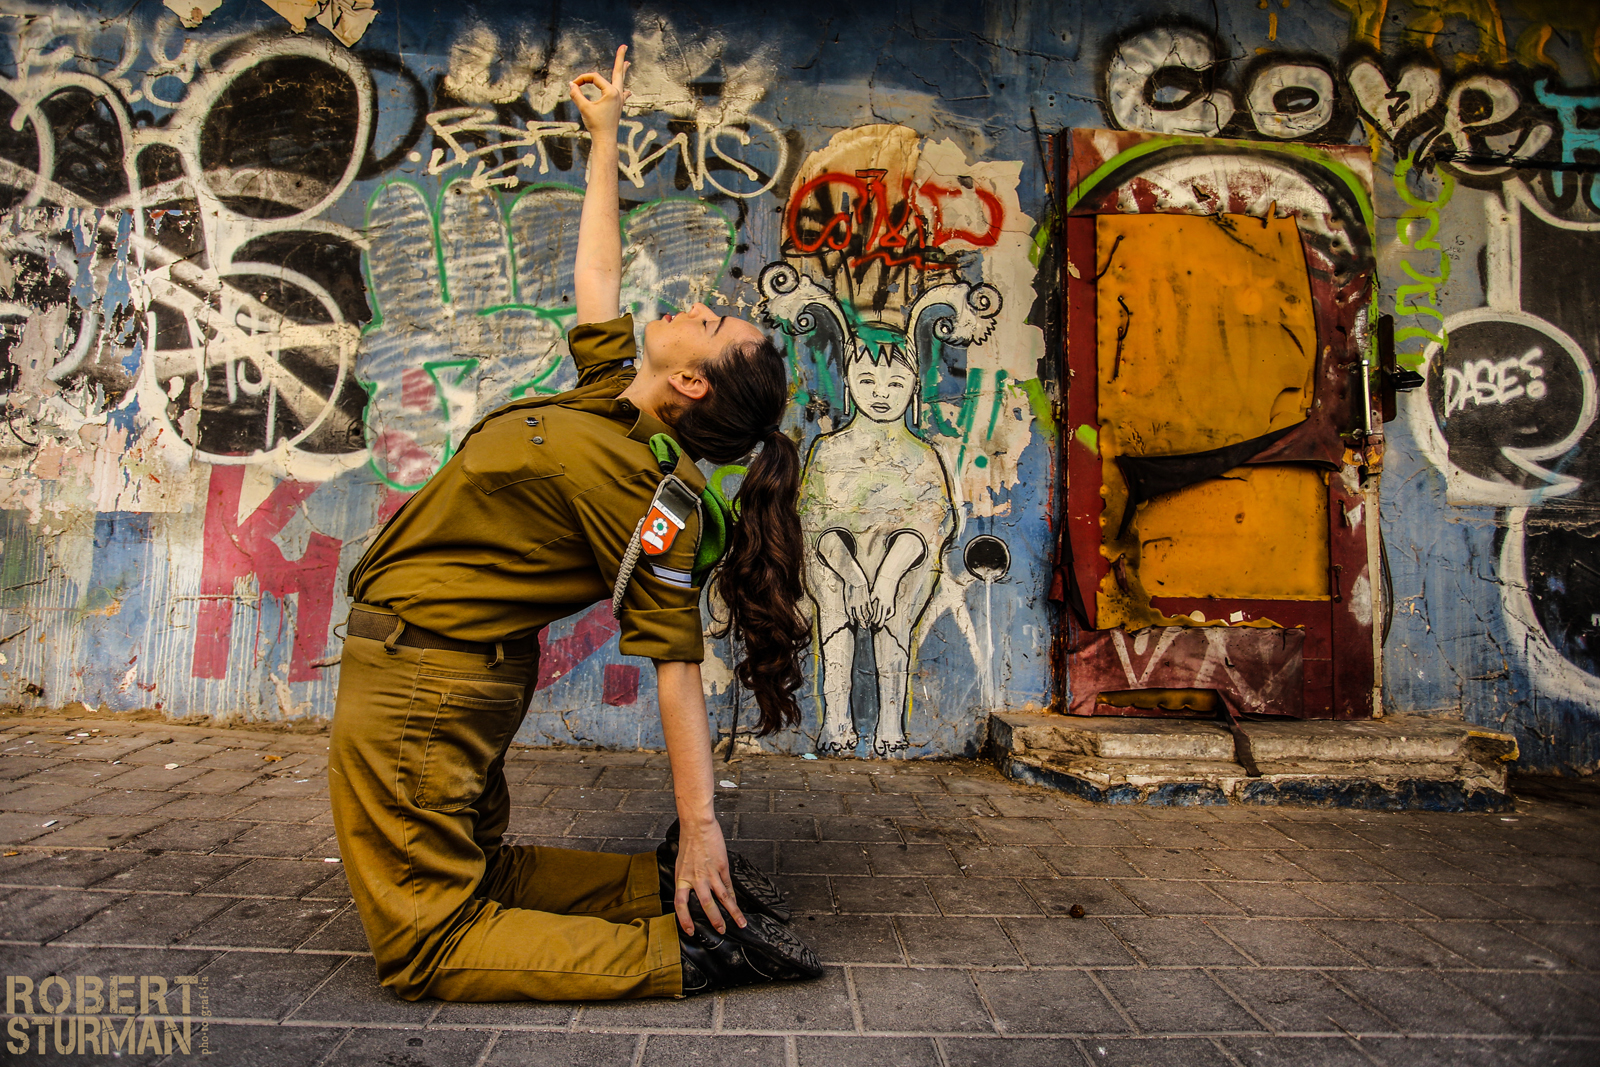 Israeli soldier Mor Gutwillig doing yoga on a Tel Aviv street. Photo by Robert Sturman